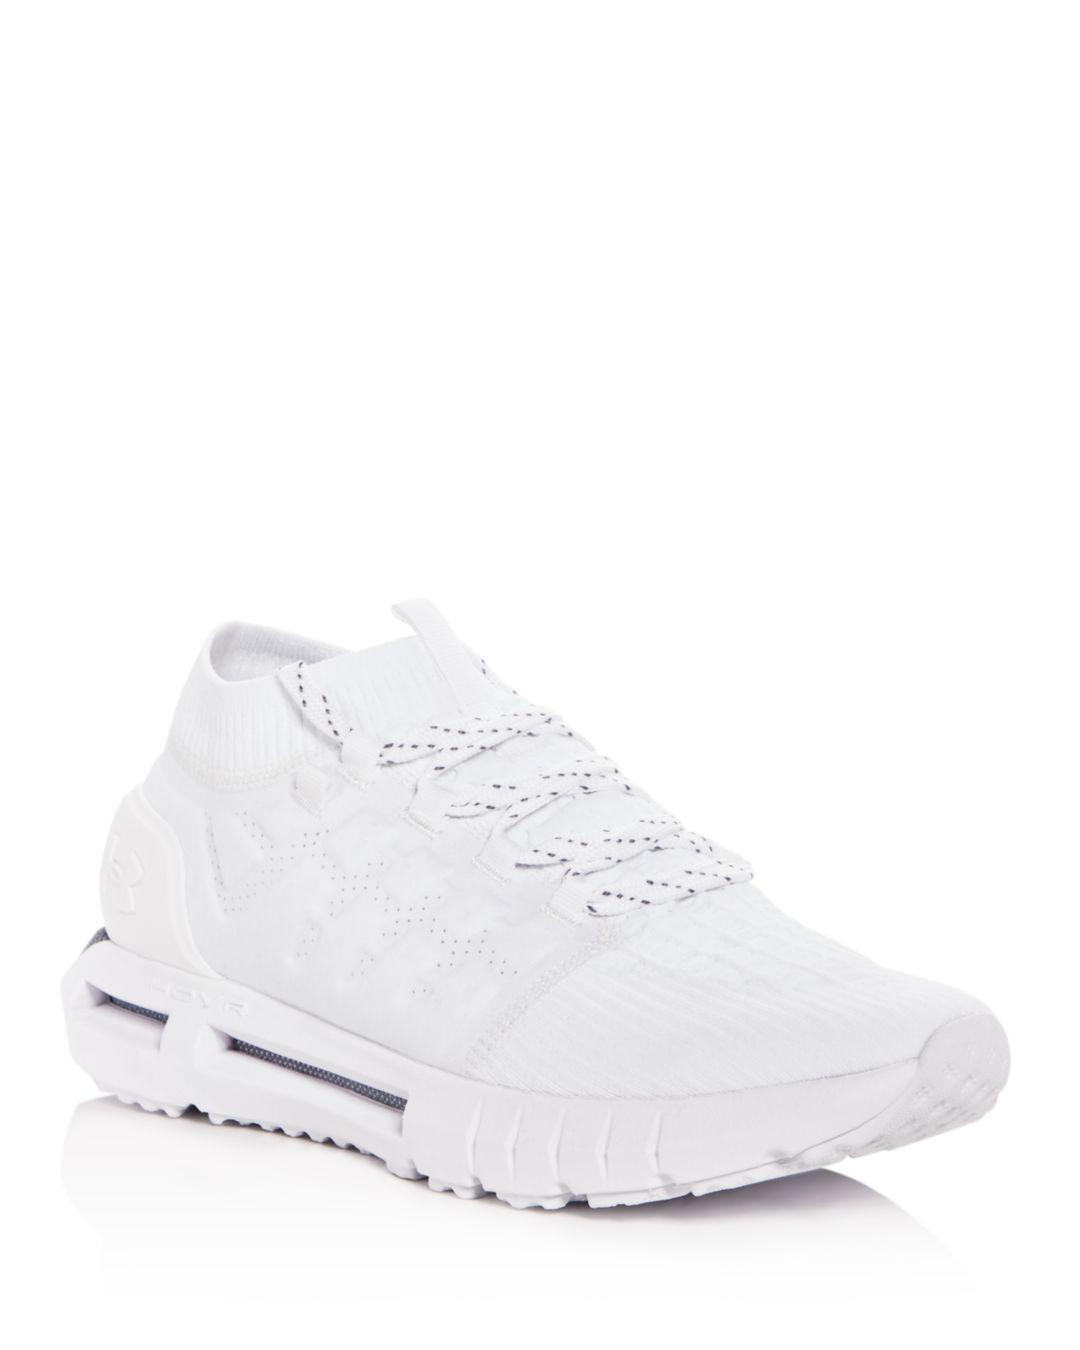 23b34daed62 Under Armour Men's Hovr Phantom Knit Lace Up Sneakers in White for ...